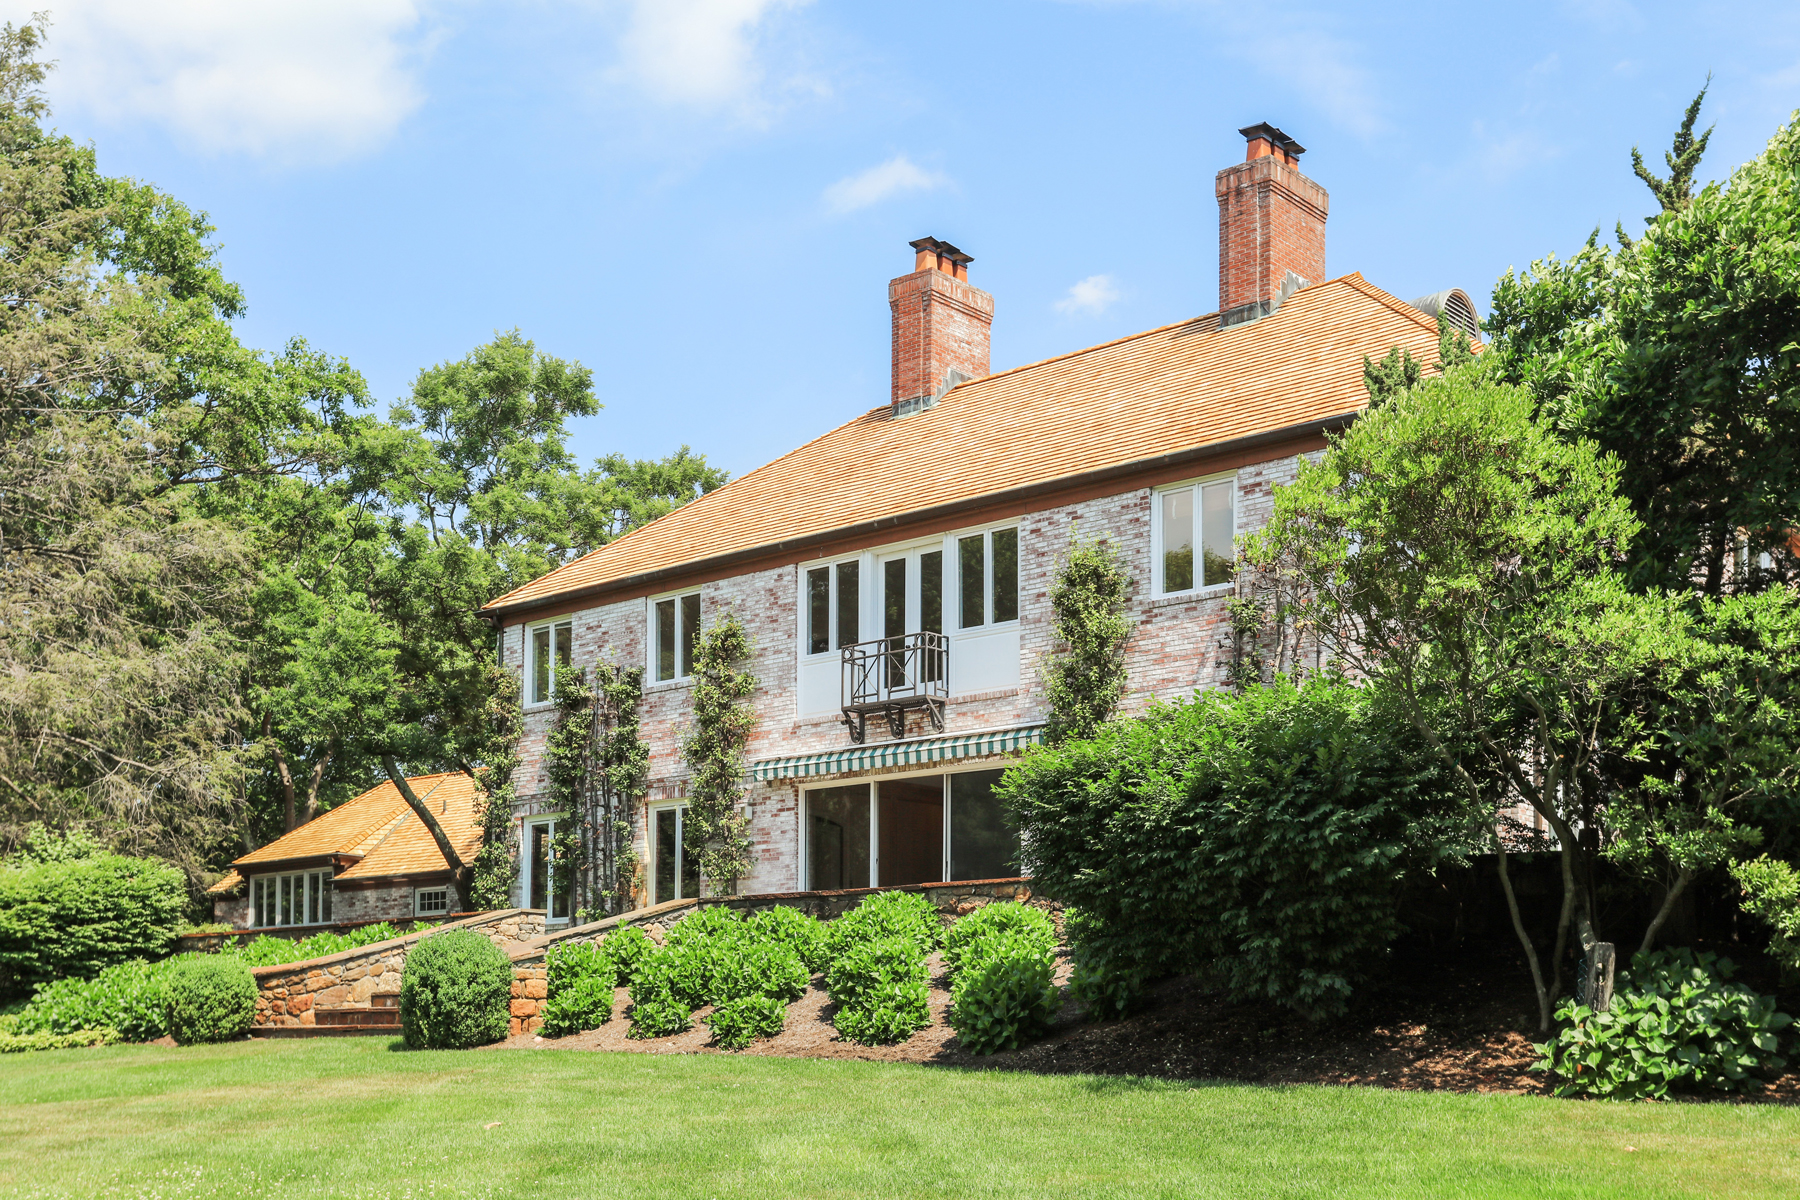 Single Family Home for Sale at On a clear day, you can see forever. 93 Whippoorwill Road, Armonk, New York, 10504 United States